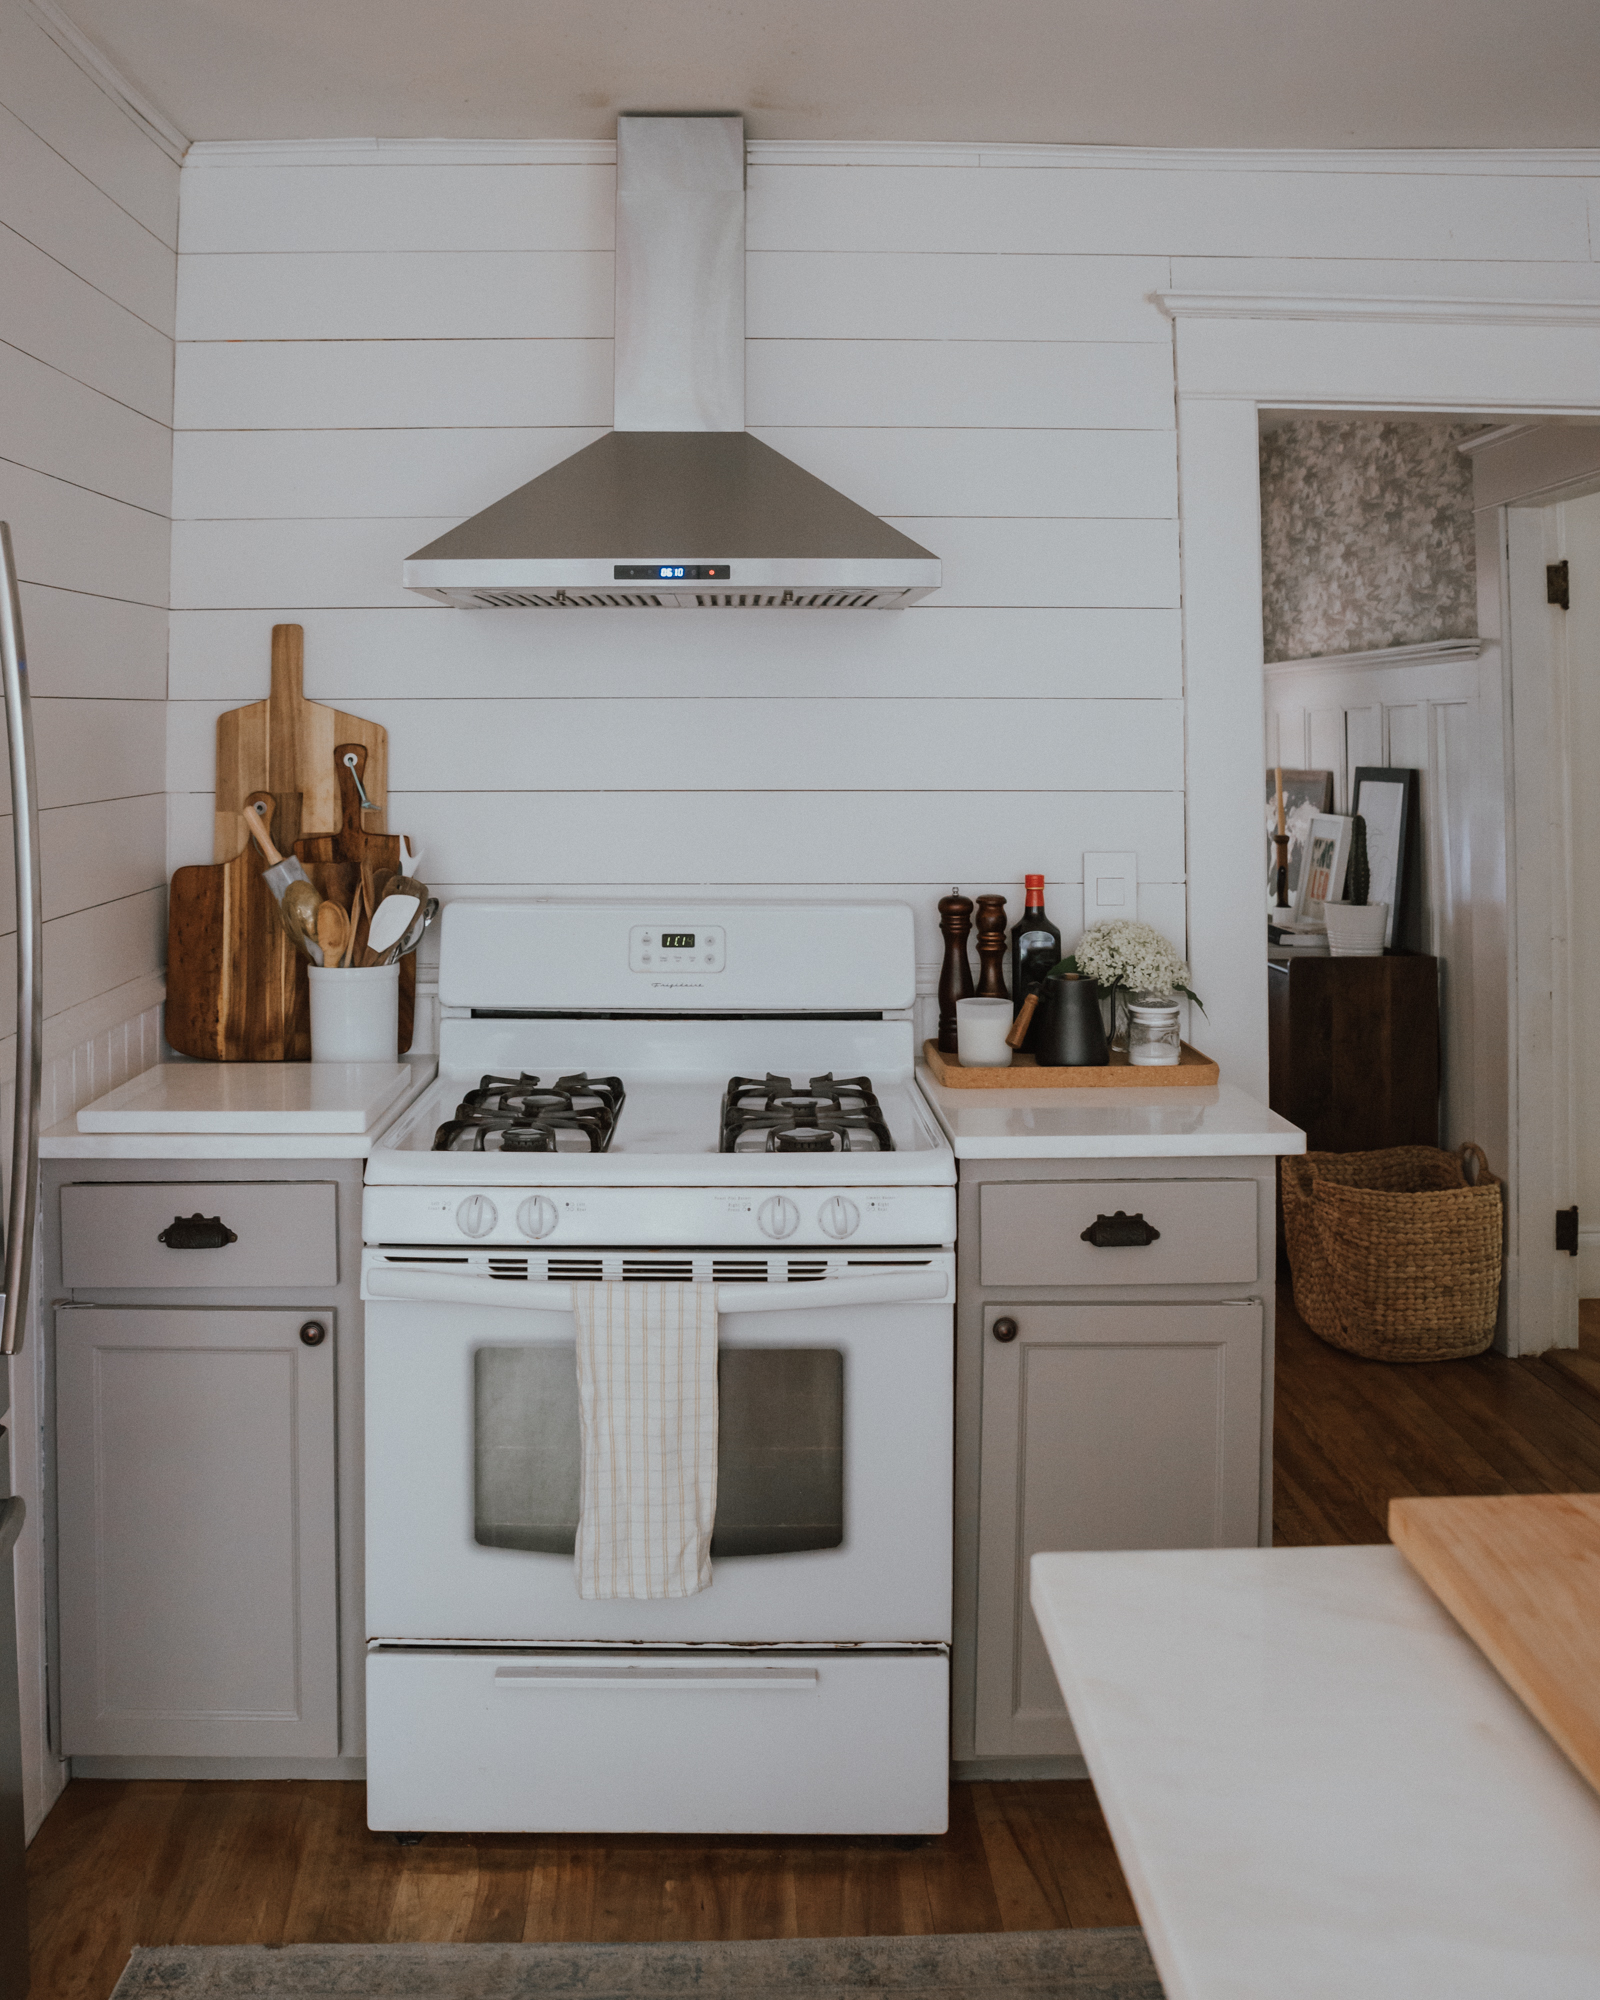 The Wild Decoelis| Our Kitchen Reno : Before and after | shiplap